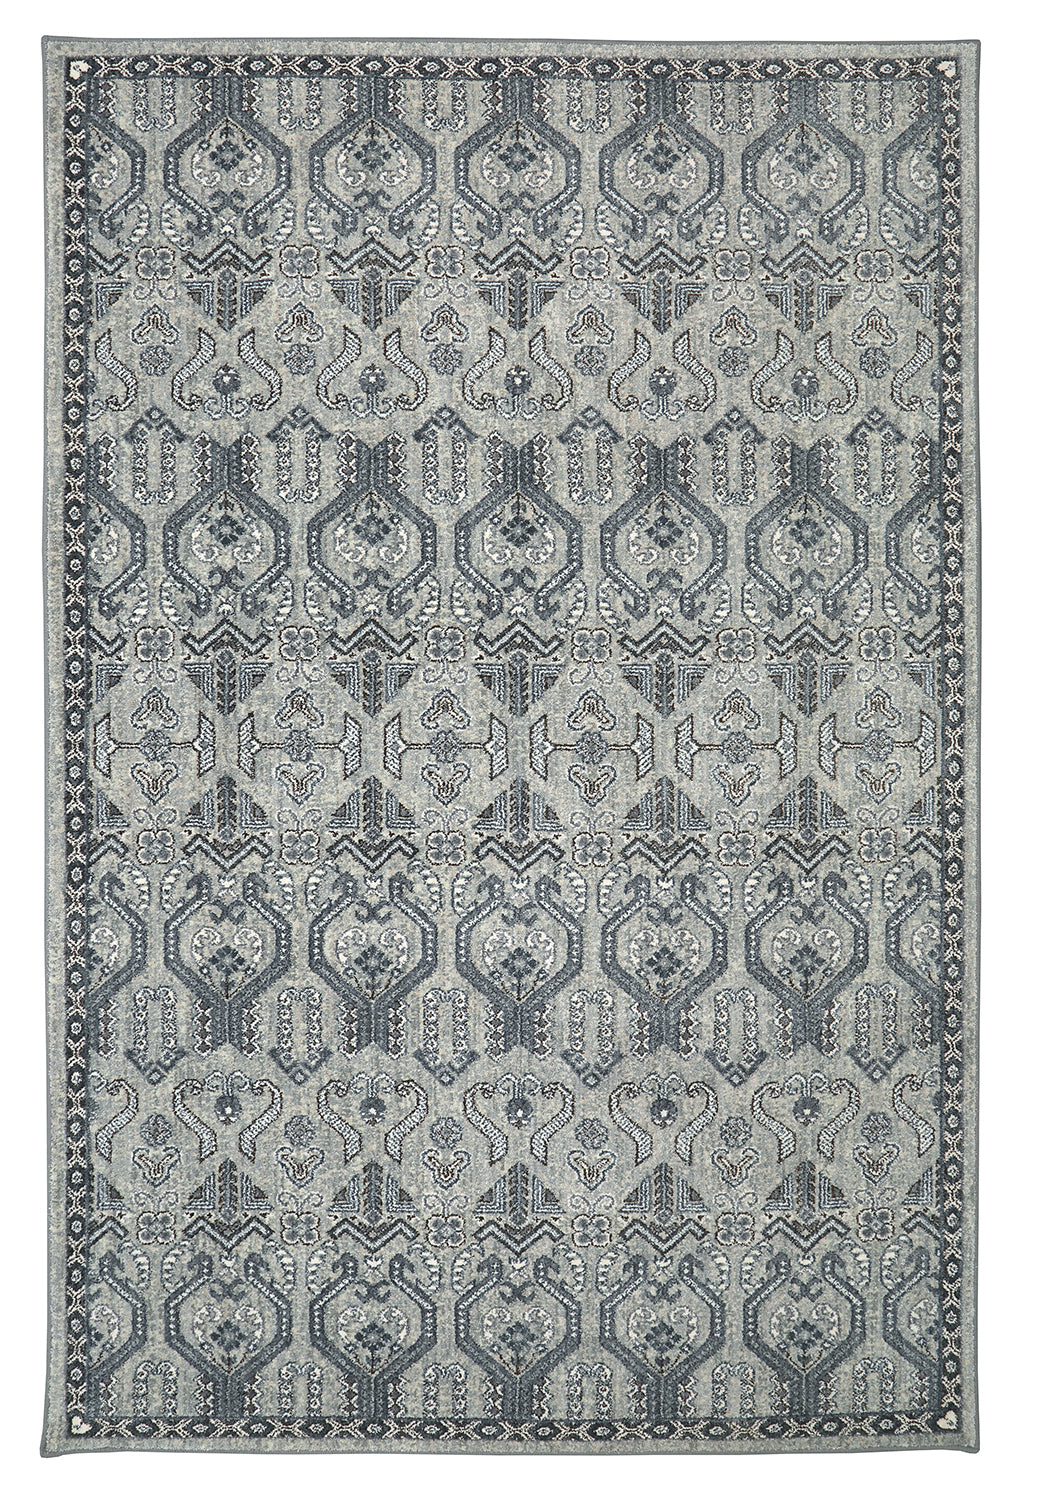 Karastan Euphoria Castine Willow Grey Area Rug main image